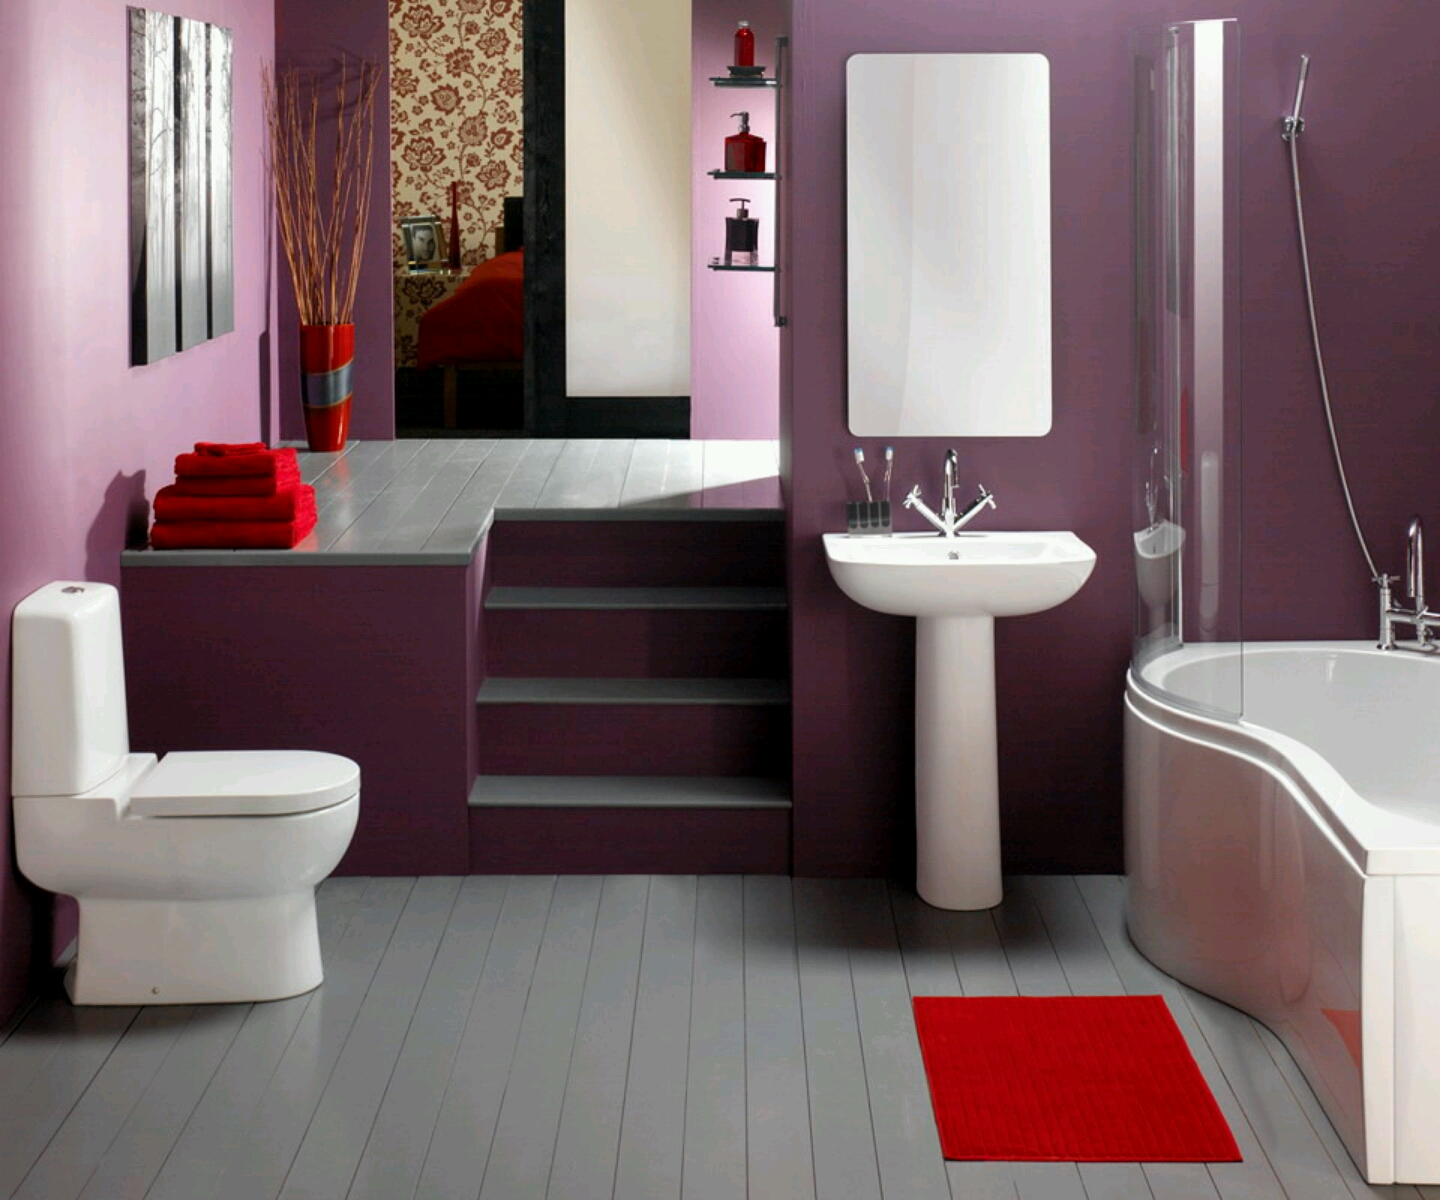 New home designs latest luxury modern bathrooms designs decoration ideas How to design a modern bathroom